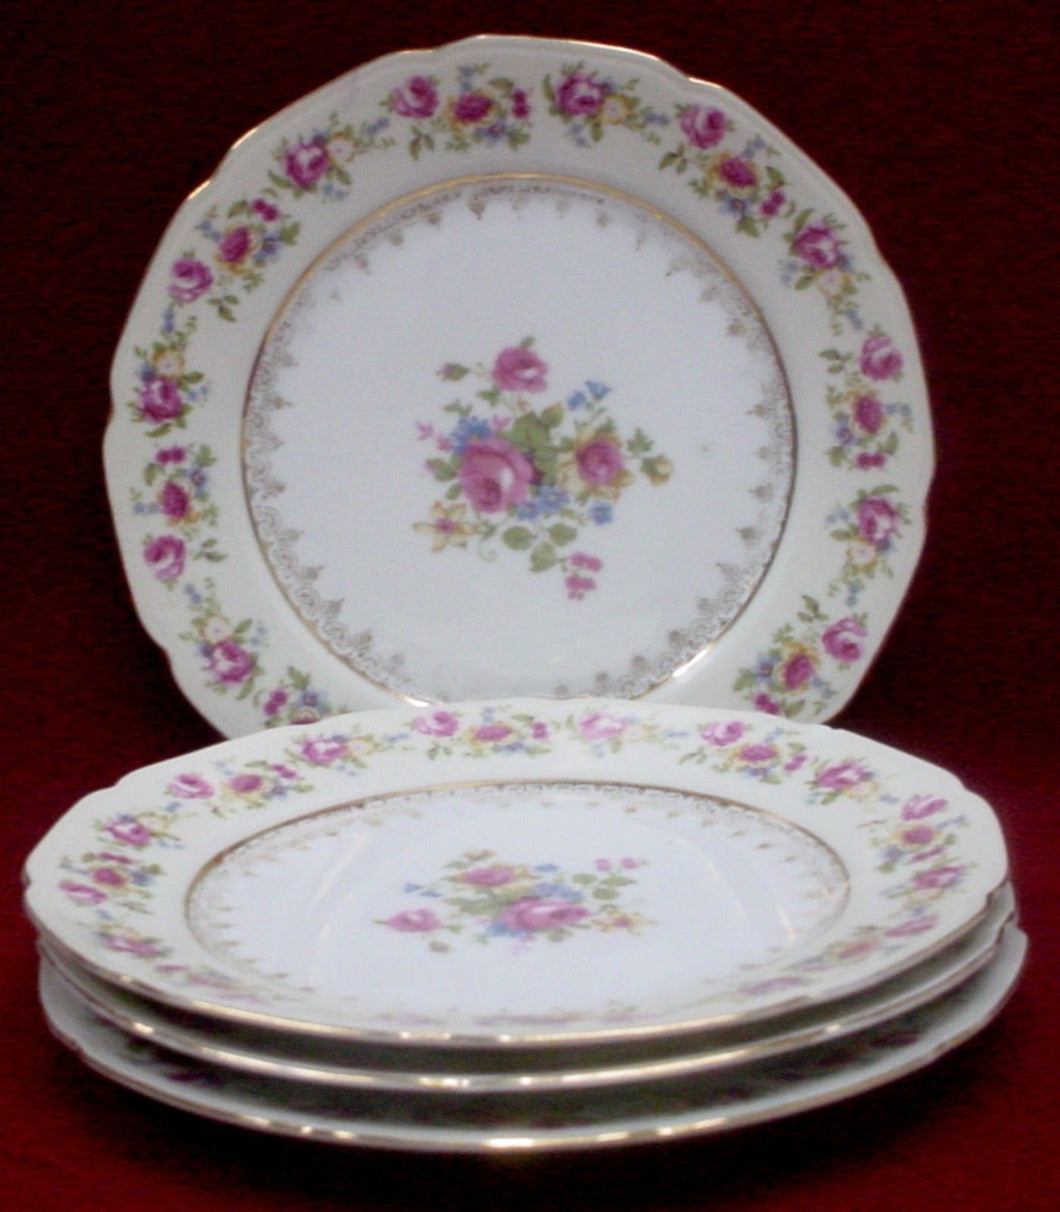 GOLD CASTLE china HOSTESS pattern LUNCHEON PLATE 8-7/8